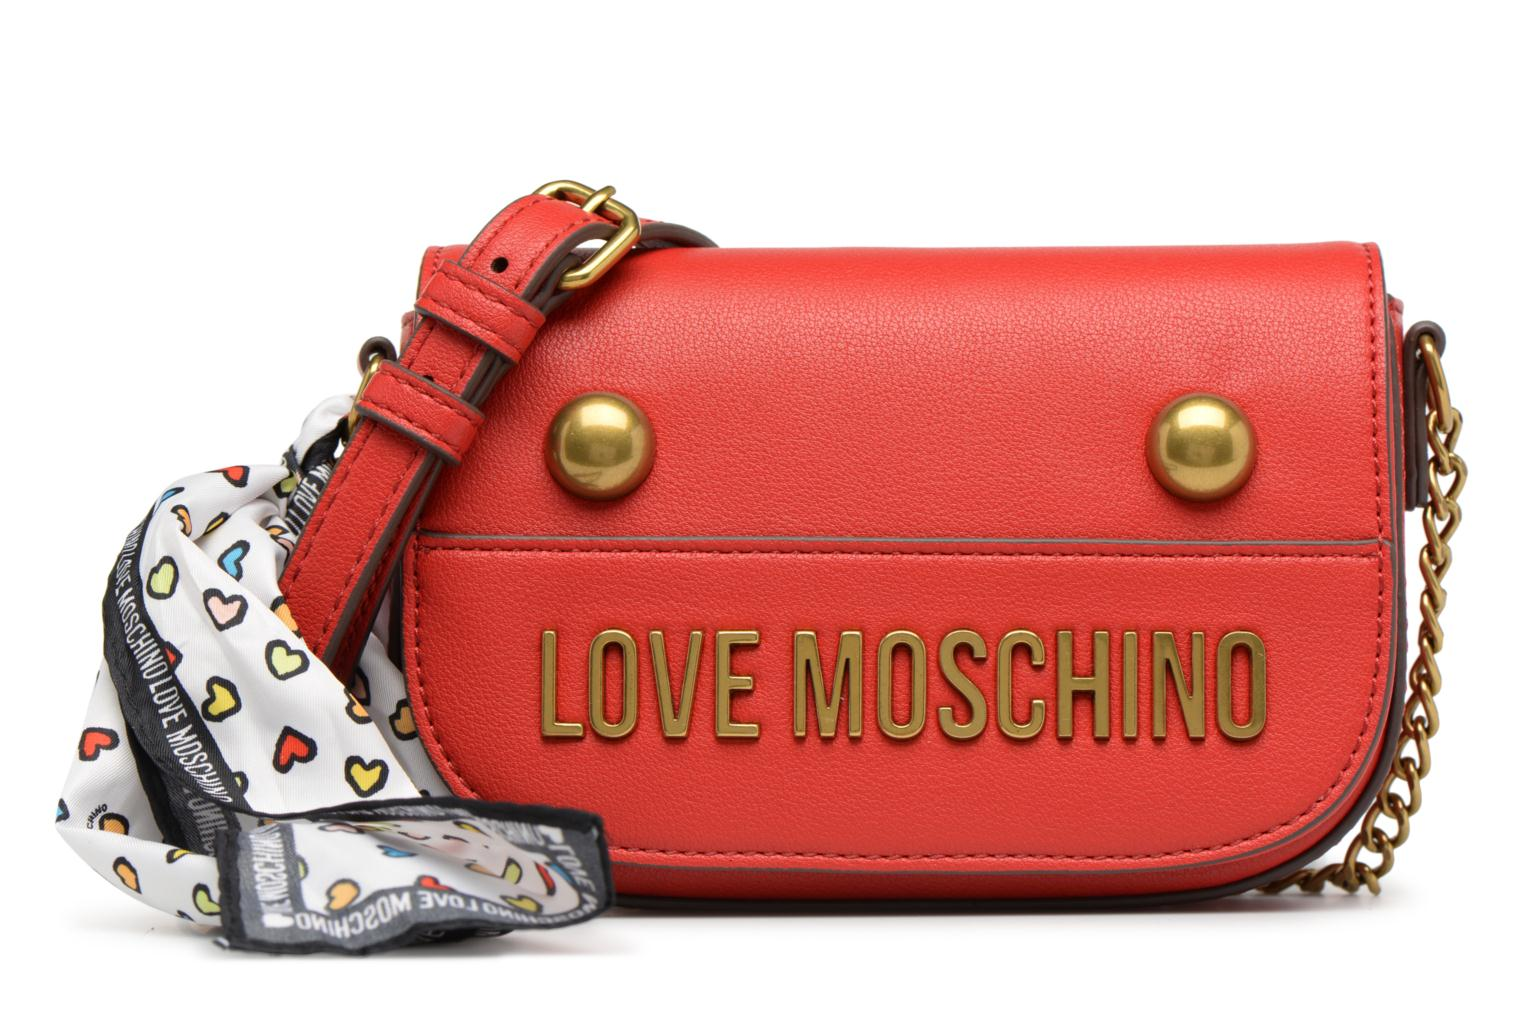 Crossbody Foulard JC4345PP05 Rosso Moschino Love 6wx5aTUxq